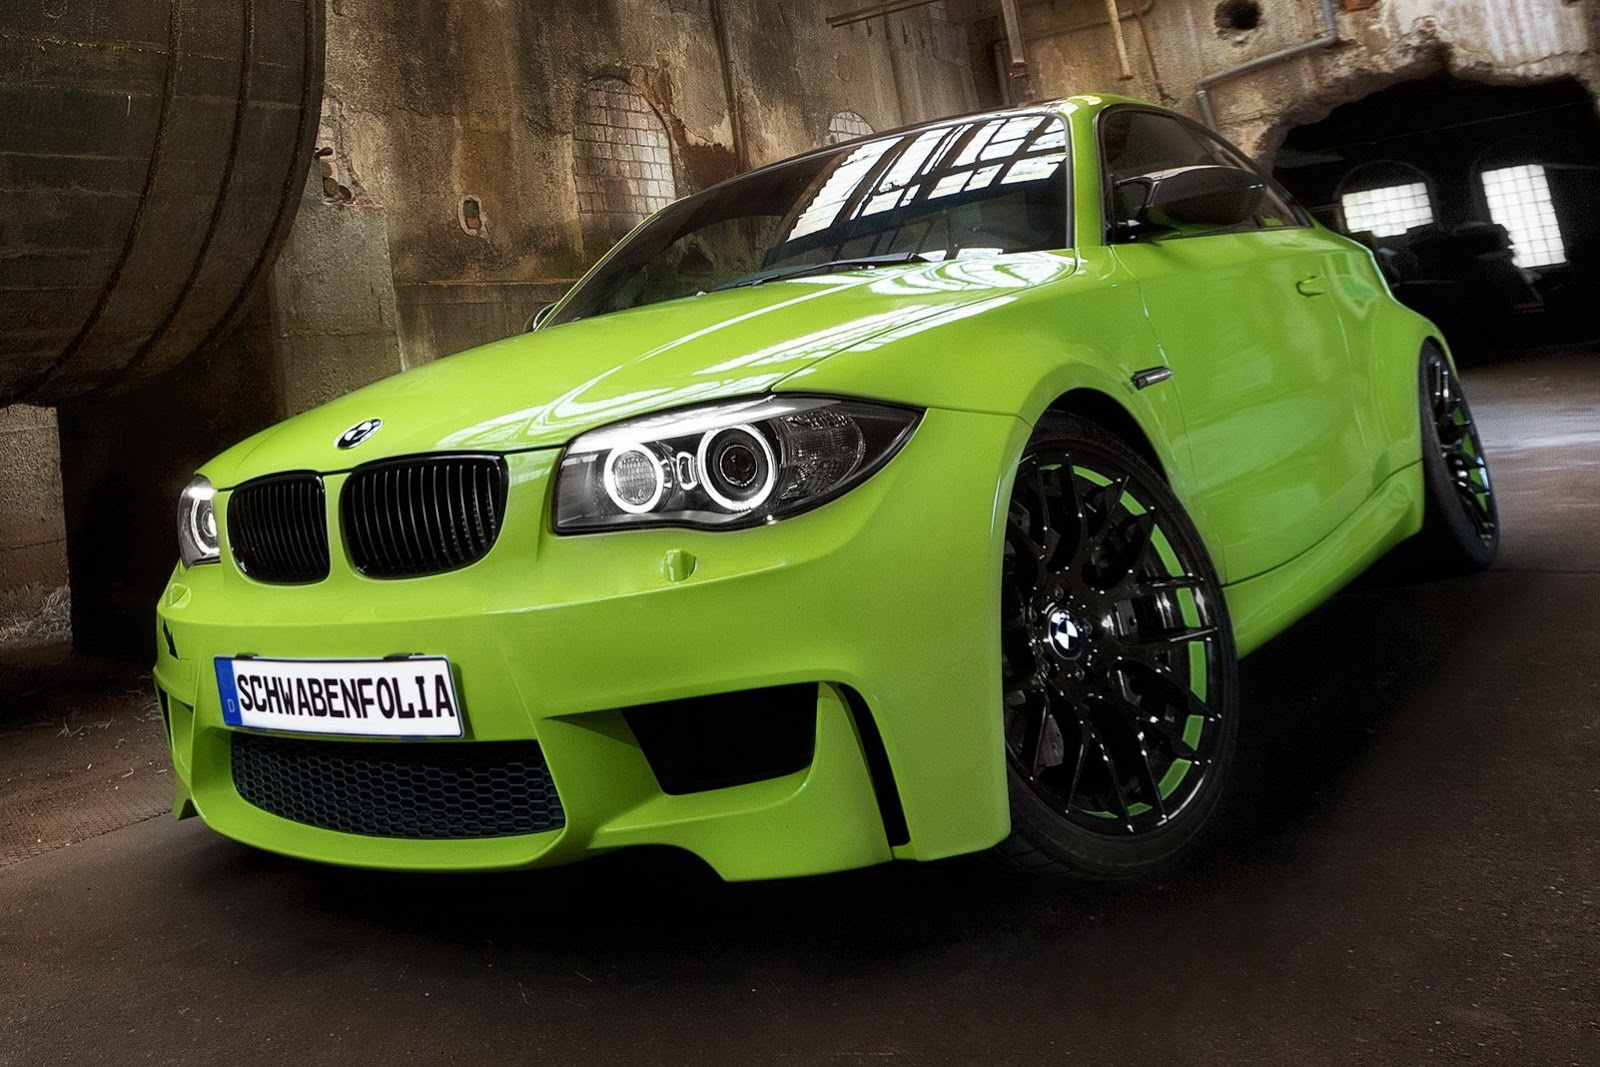 All Cars Logo Hd Wallpapers Lime Green Bmw 1m Coupe From Schwabenfolia Autoevolution